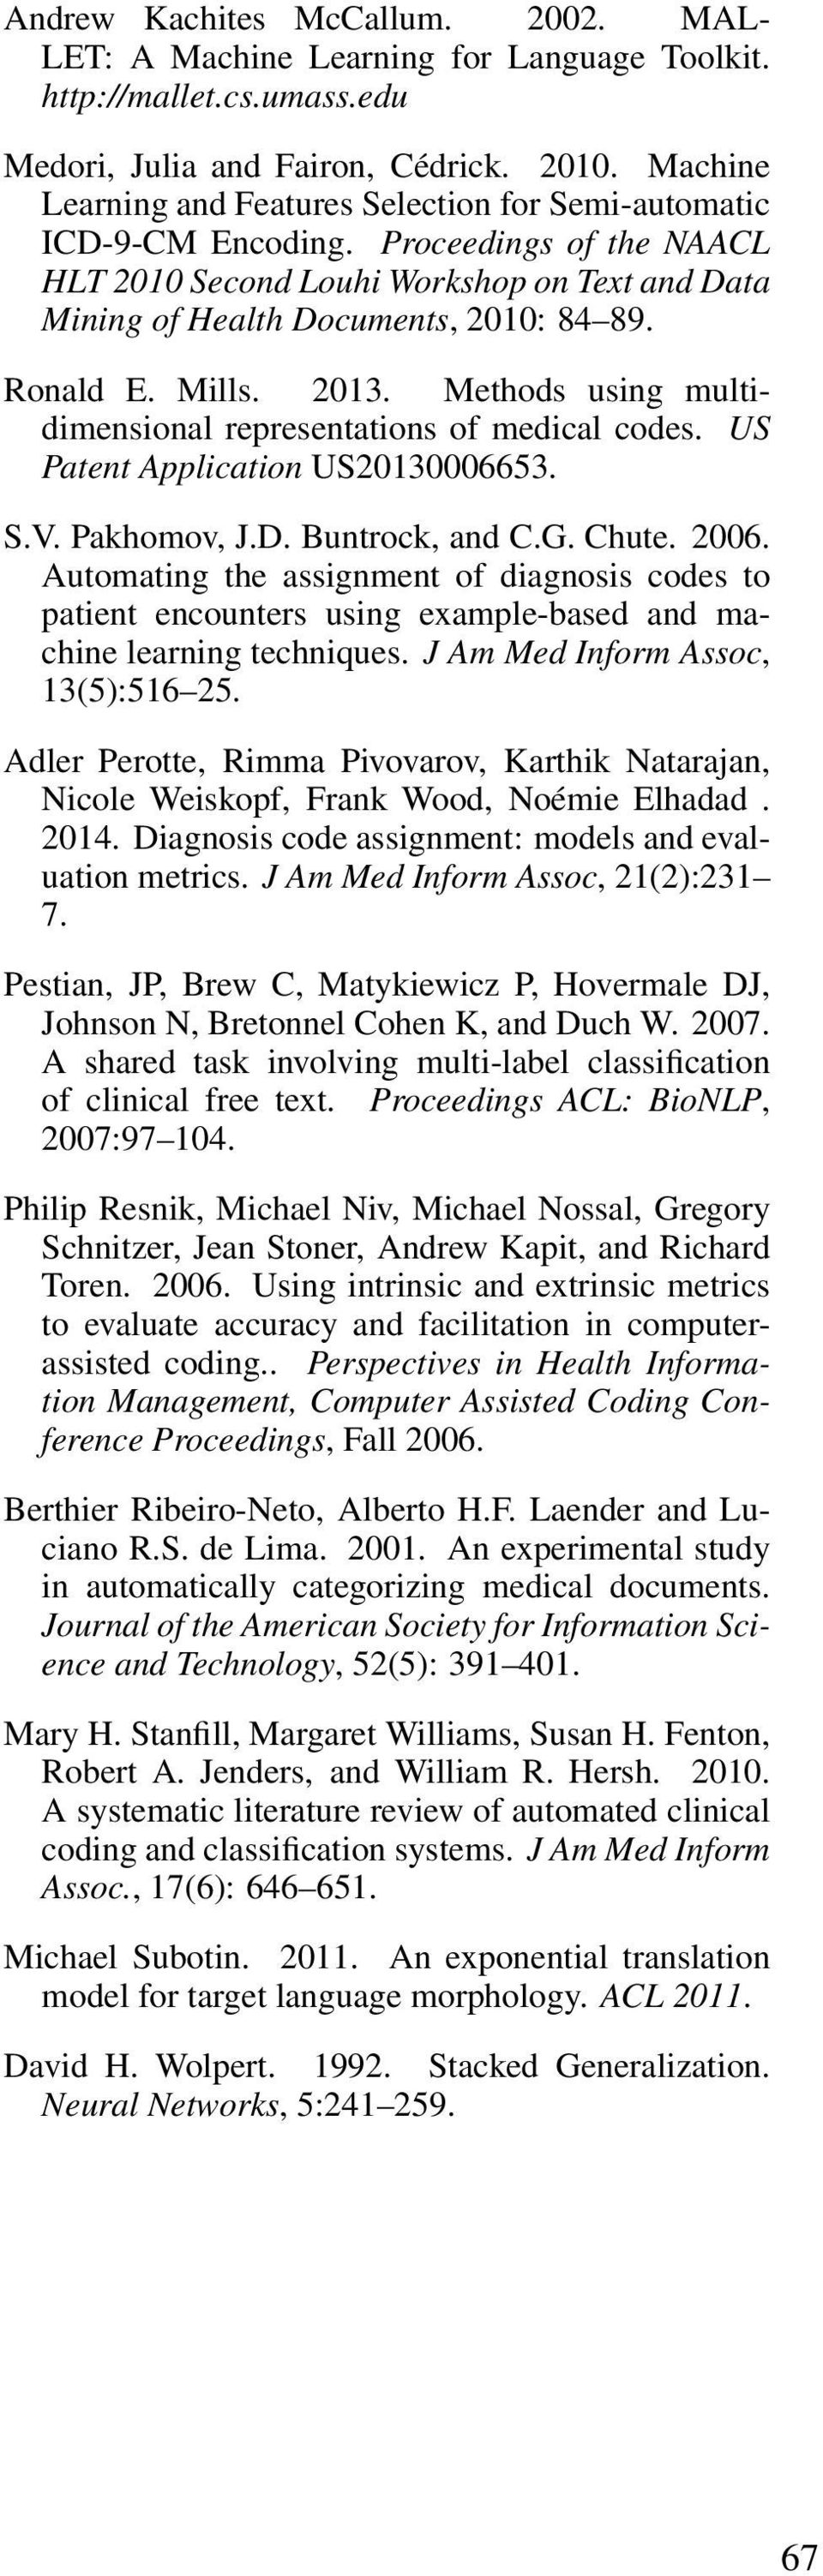 Ronald E. Mills. 2013. Methods using multidimensional representations of medical codes. US Patent Application US20130006653. S.V. Pakhomov, J.D. Buntrock, and C.G. Chute. 2006.